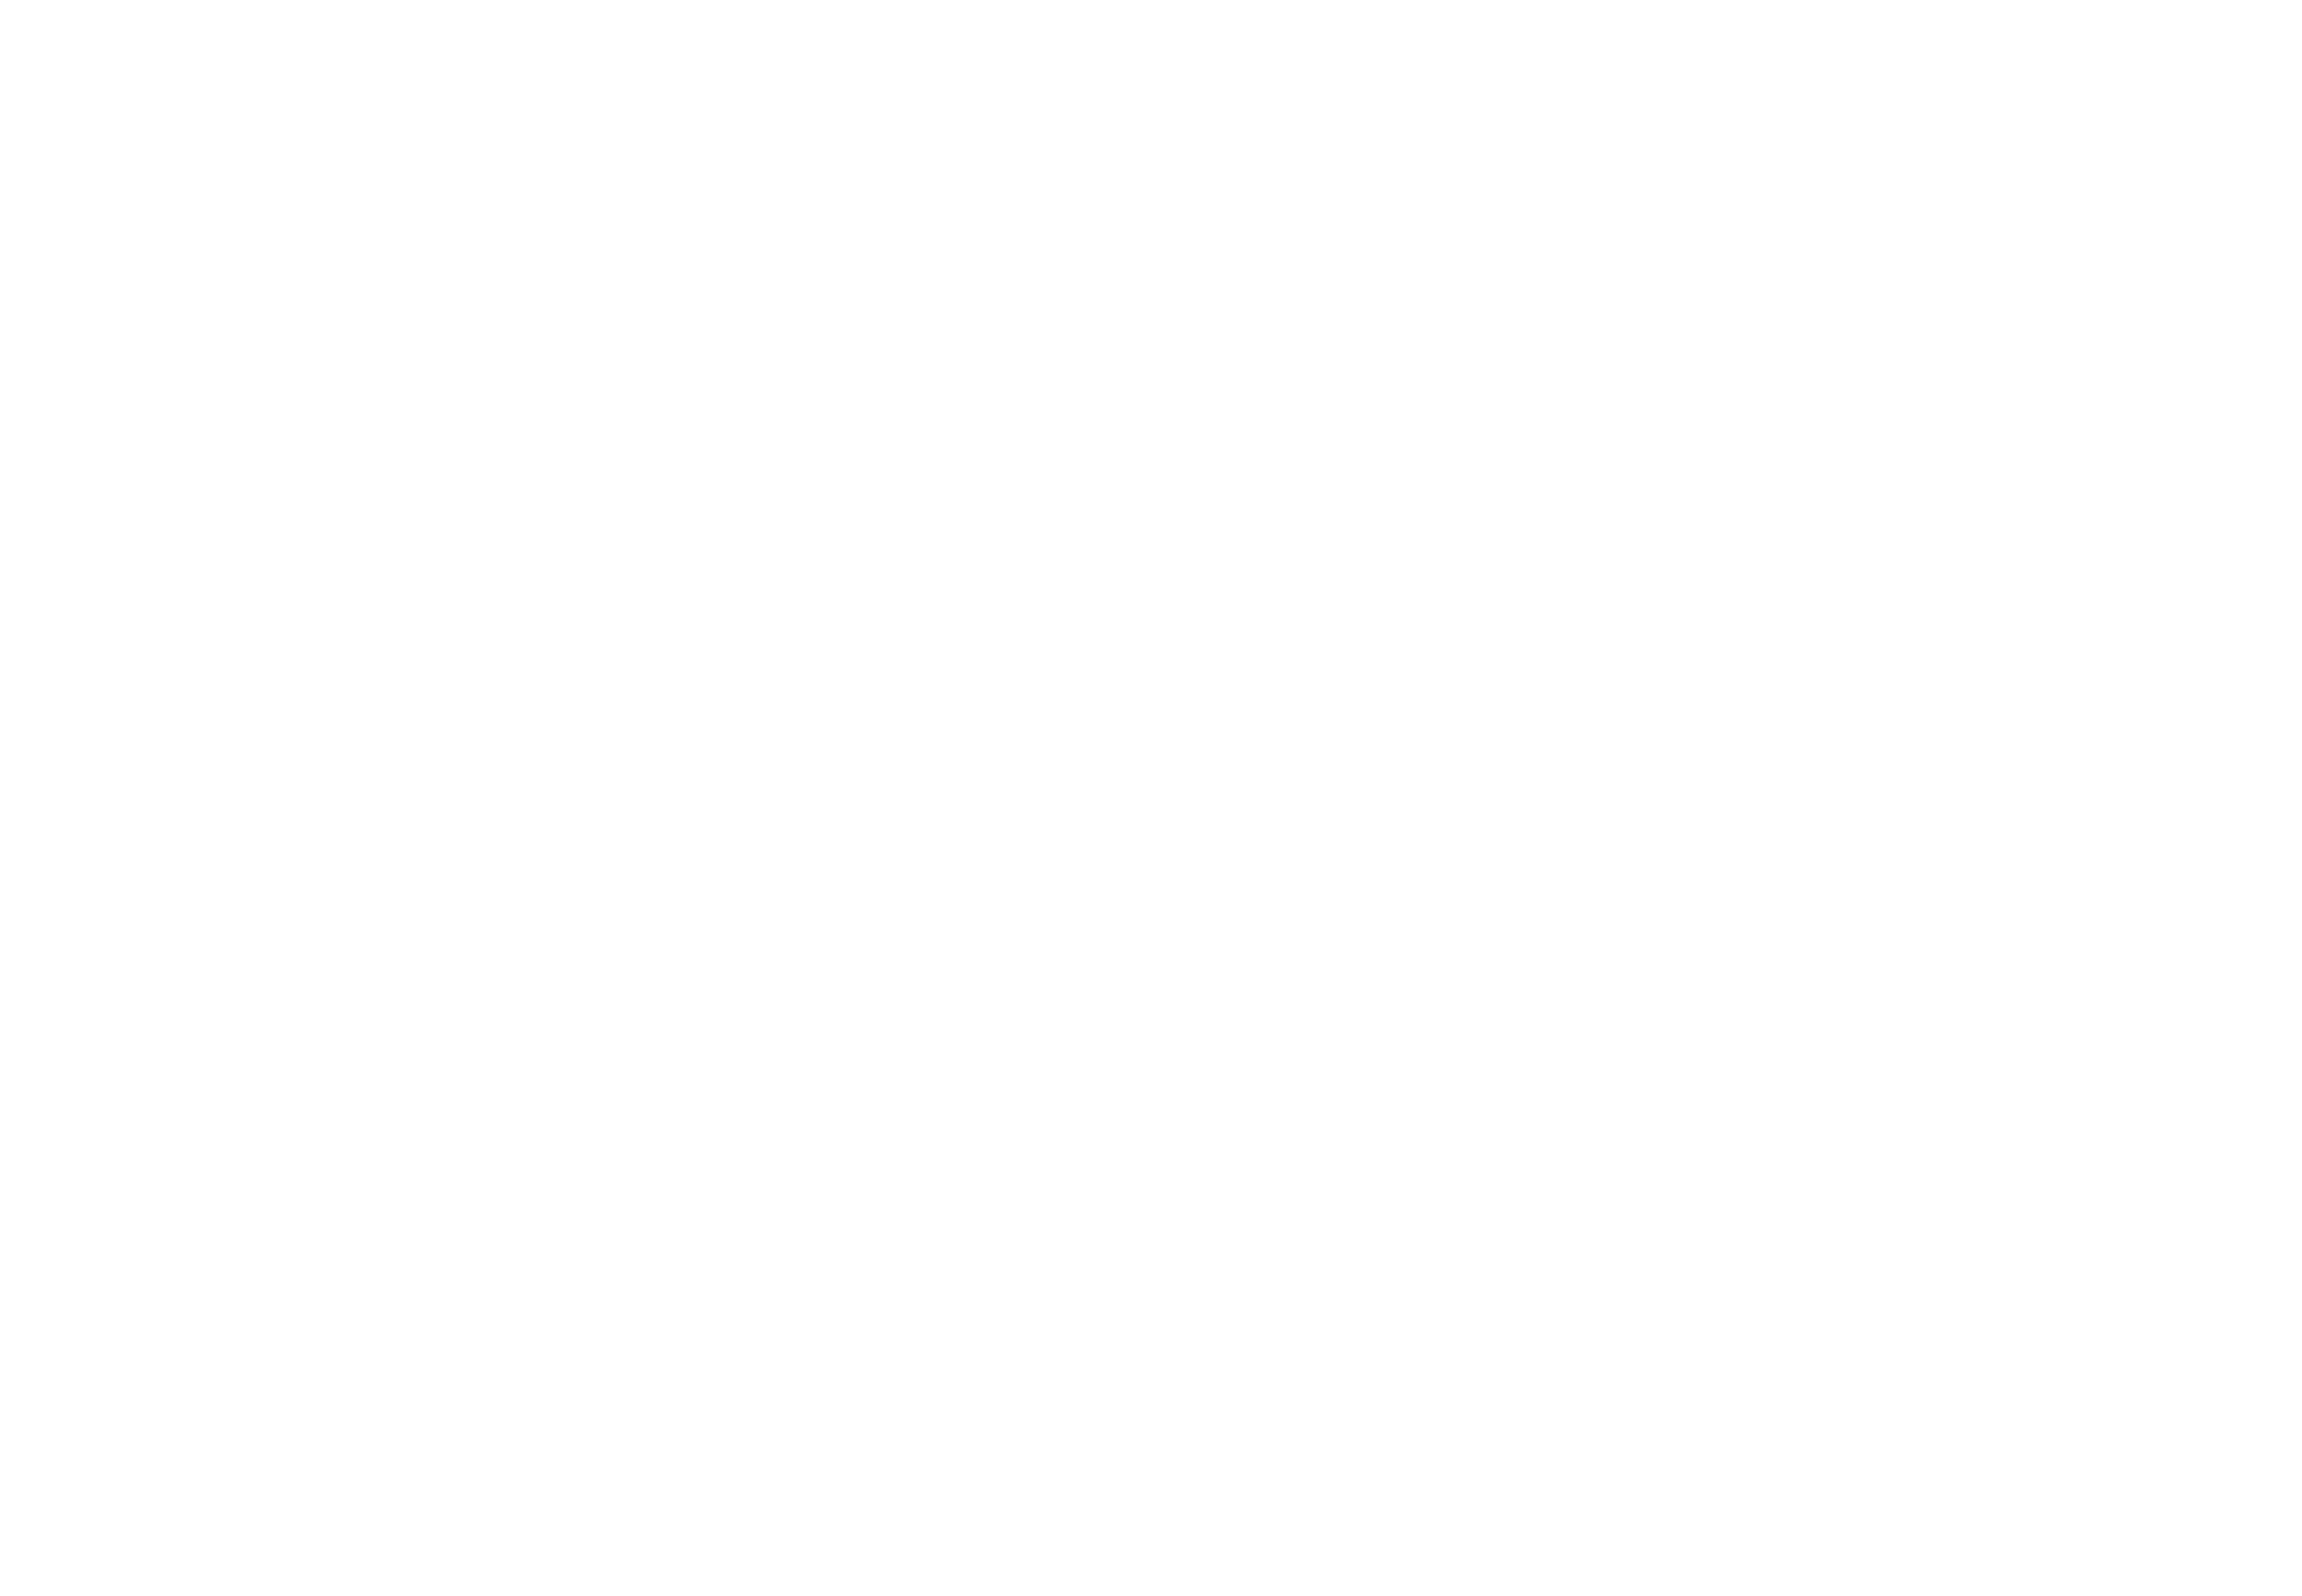 Black at Relativity logo